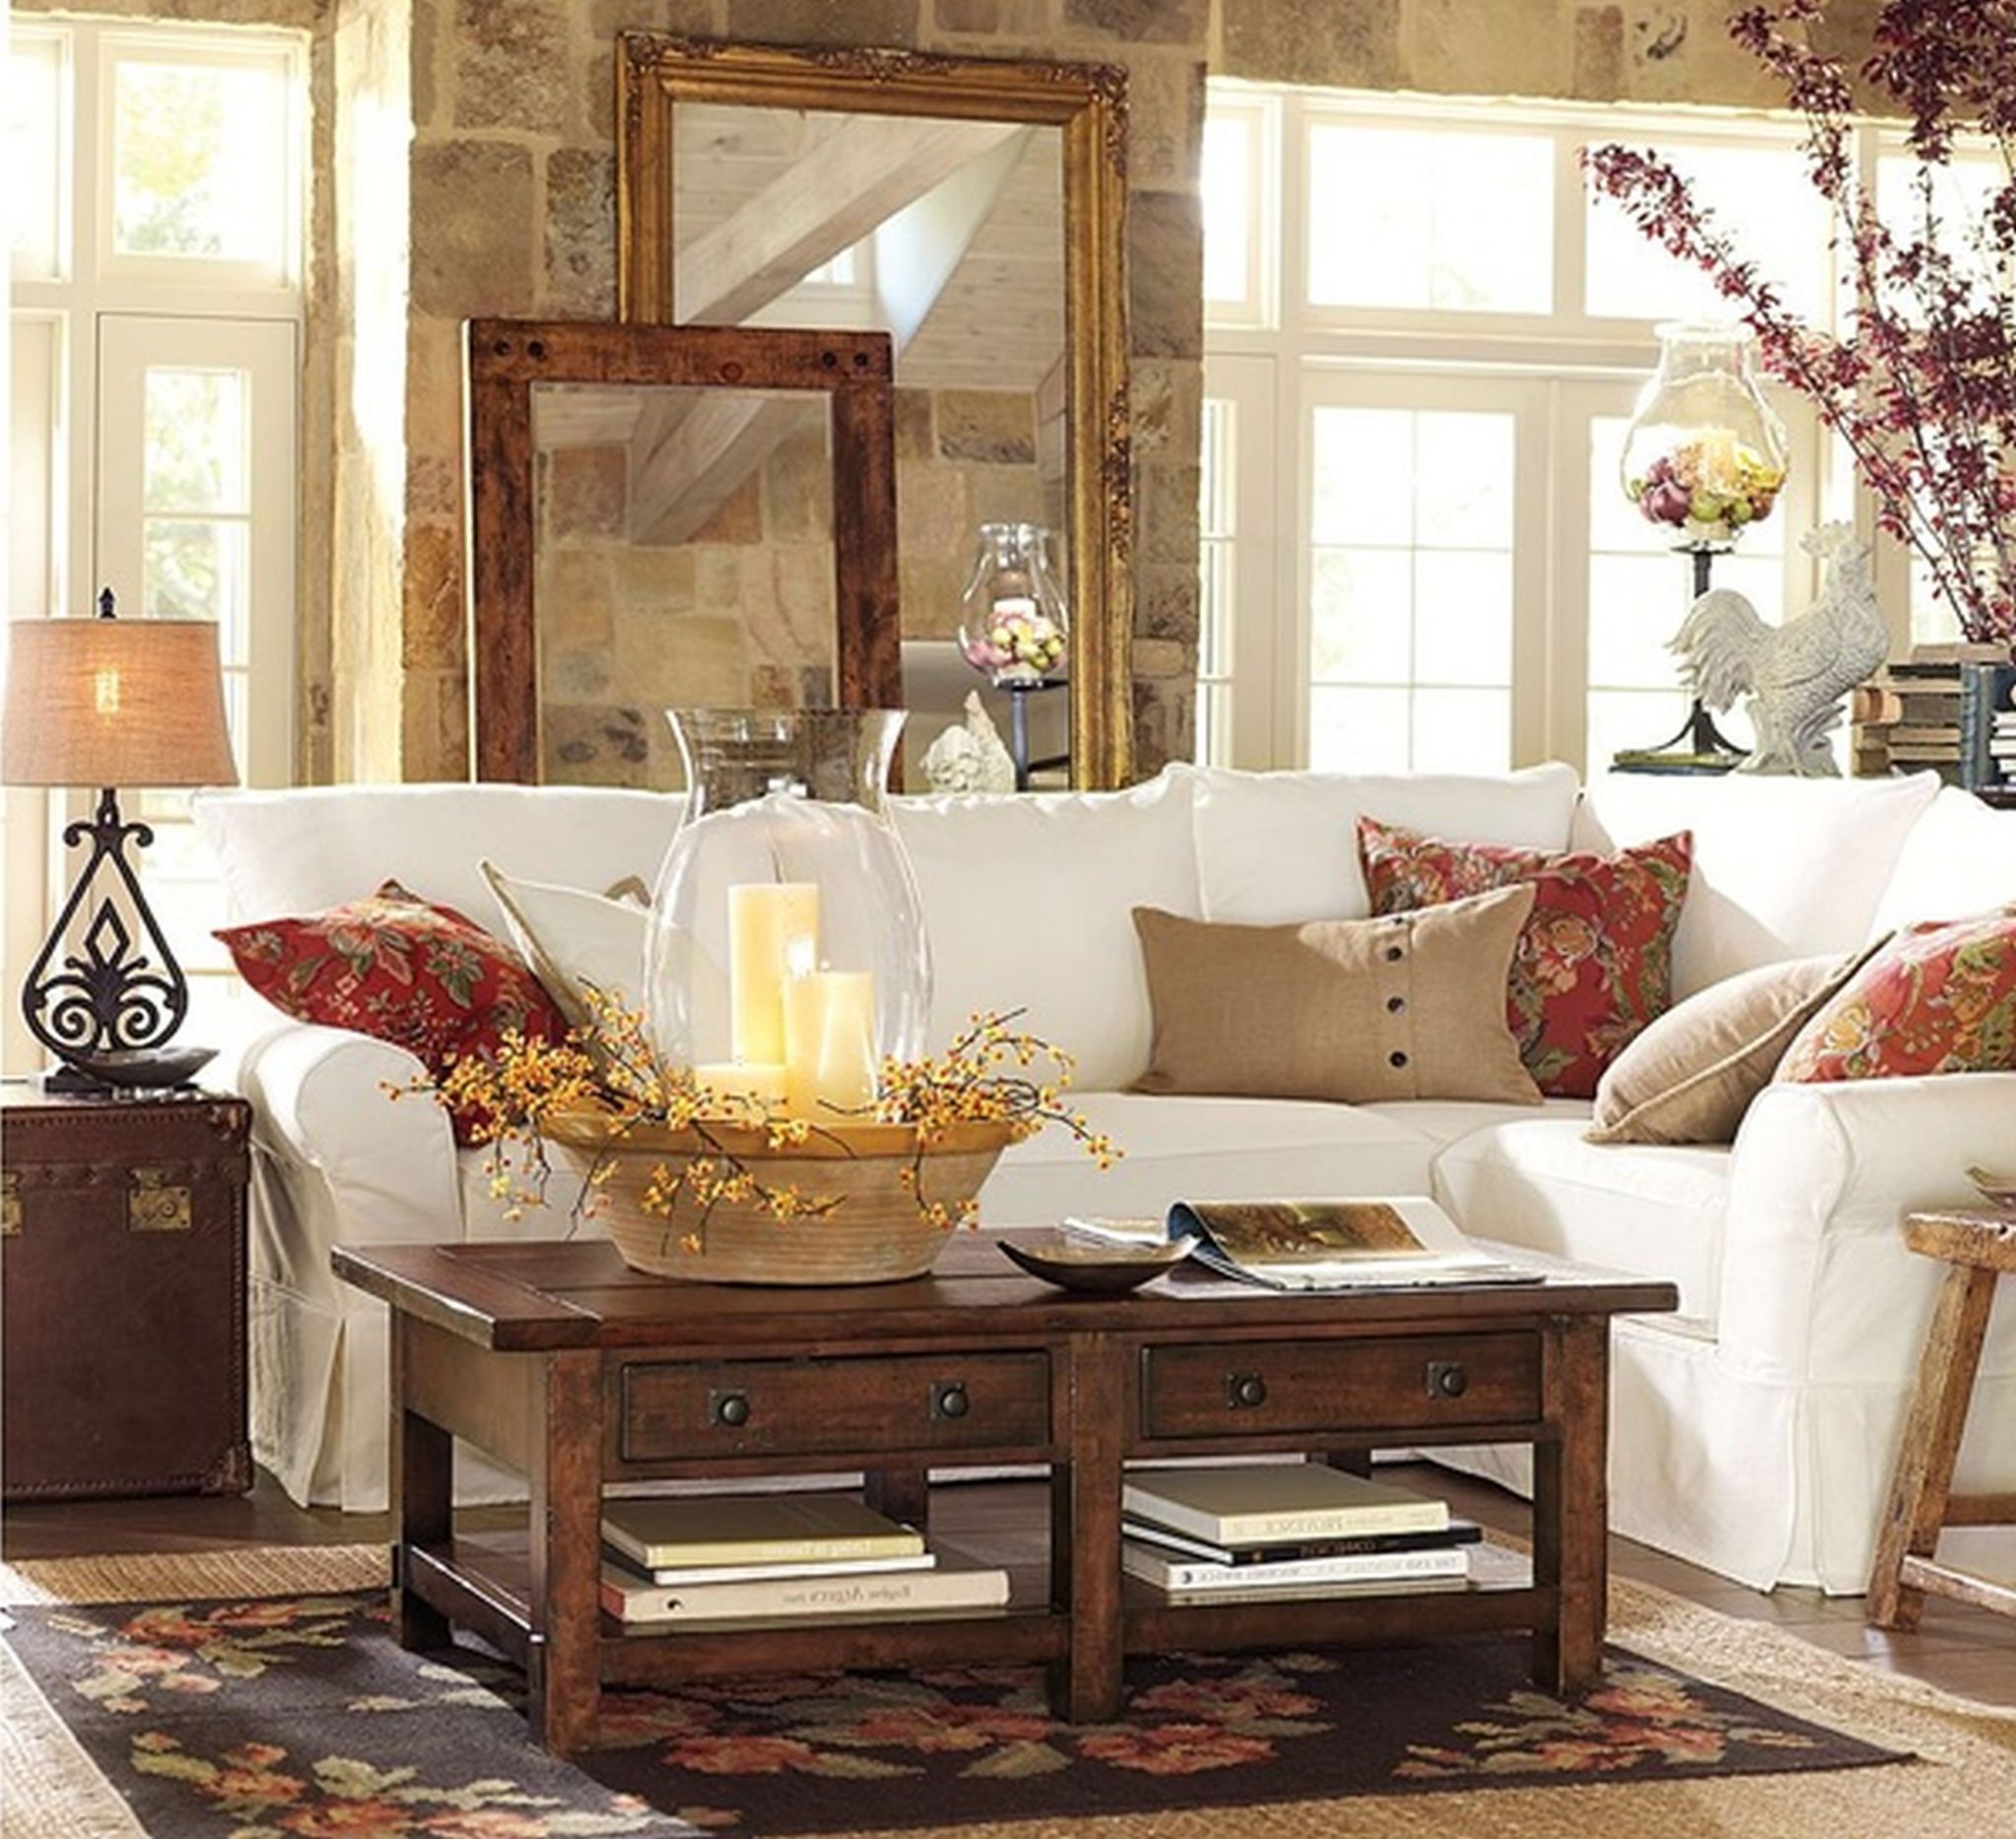 Amazing Design Of The Living Room Areas With White Sofa Added With Brown Wooden Table As The Pottery Barn Living Room